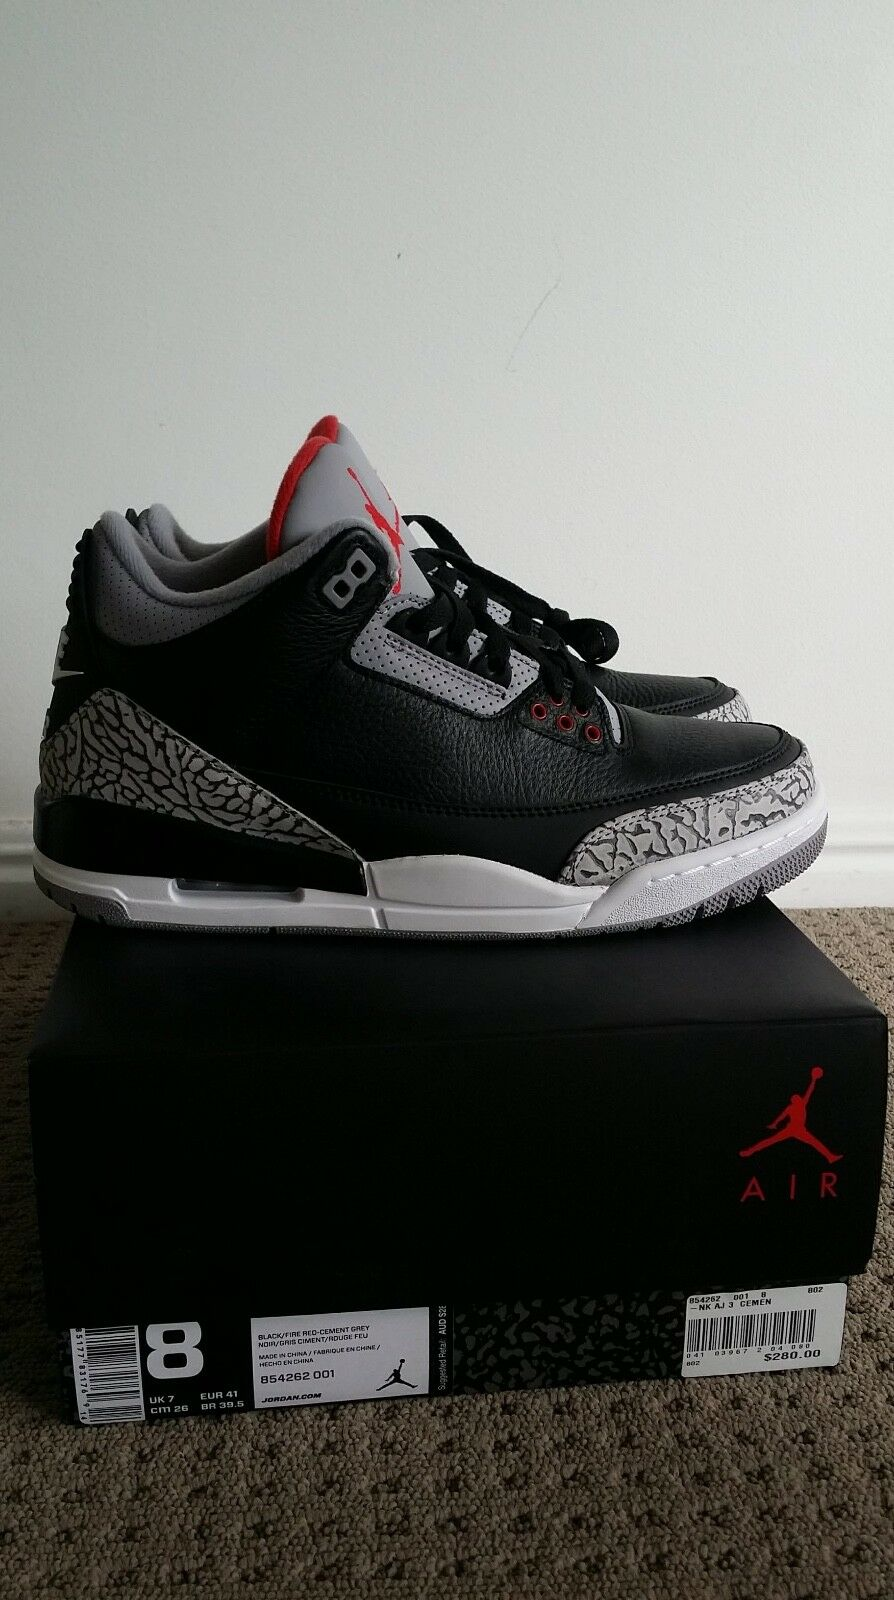 Air Jordan 3 Black Black Black Cement Size 8 US DEADSTOCK f6e1c7